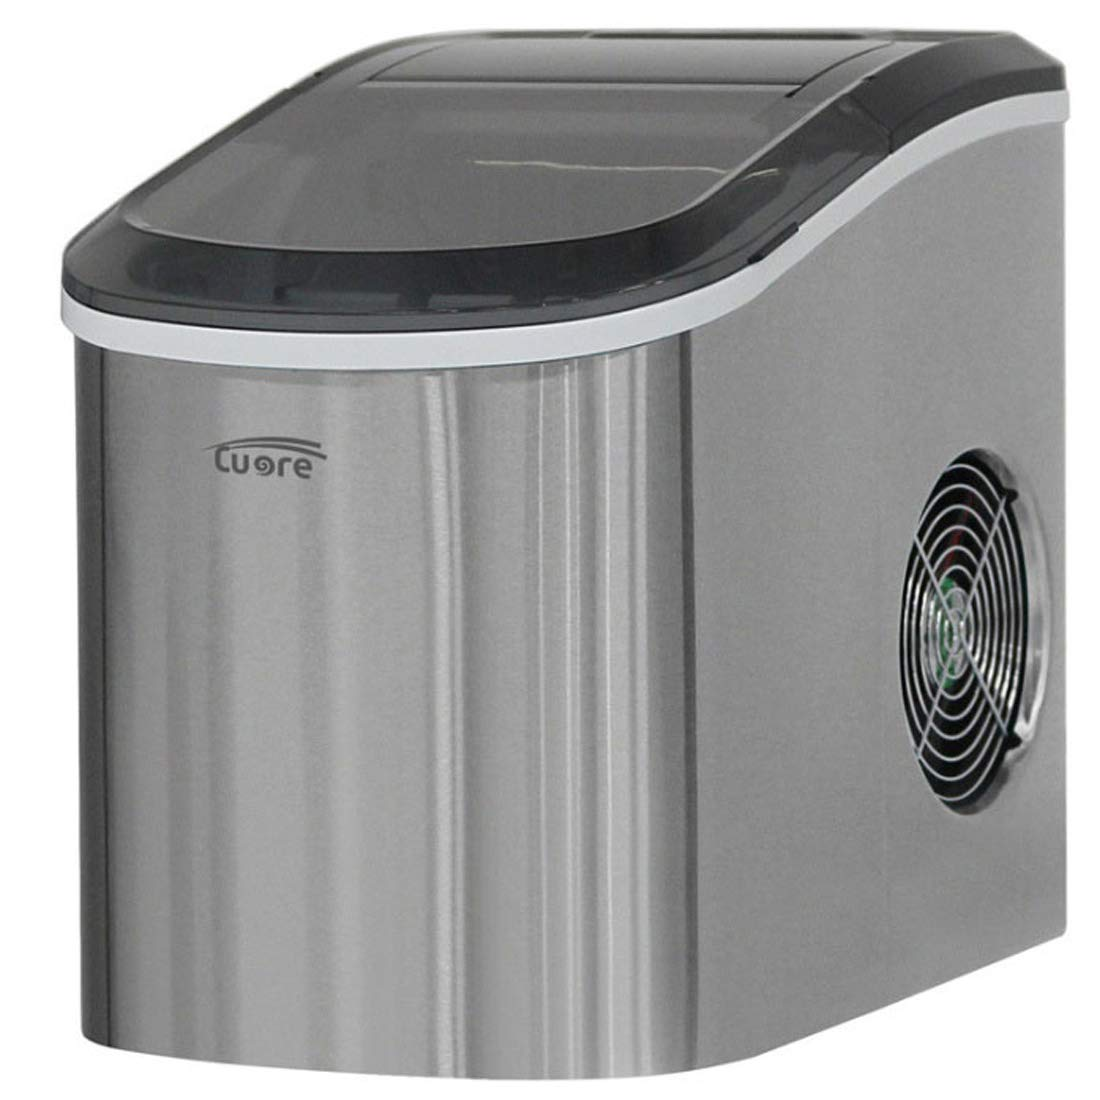 Cuore UIM-800SS Electric Portable Ice Maker Fast Hard Ice Stainless Steel 220V (Silver)